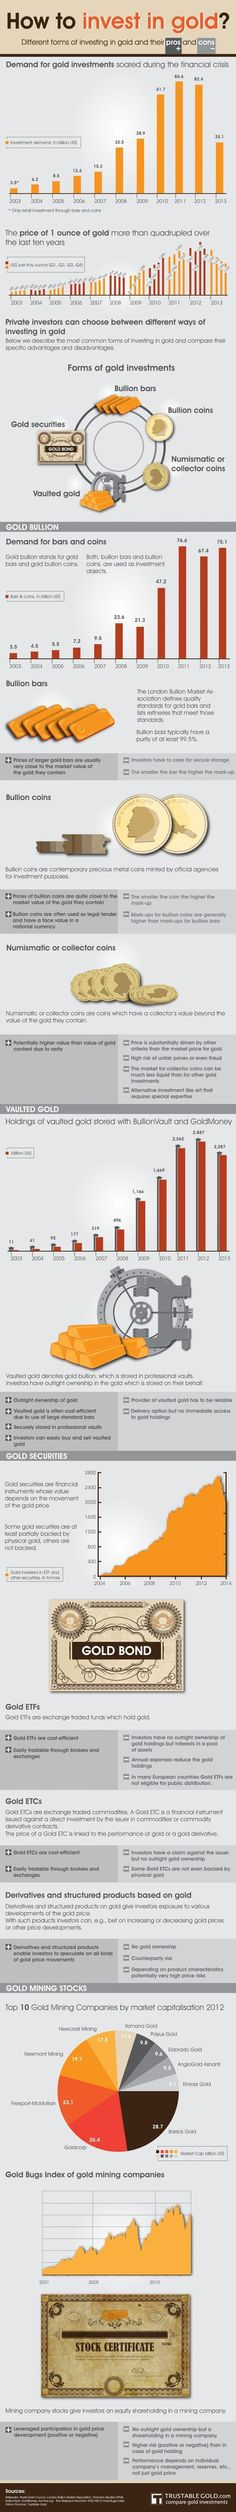 Ways of Investing in Gold.  Start TODAY! Join Karatbars International for FREE visit my link http://www.karatbars.com/?s=michellebrandon.  Protect yourself with gold Karatbars, 24-karat currency-grade gold bullion, save a gram at a time, affordable and convenient. Gold is the asset that has proven the test of time against inflation & bankruptcy & is accepted all over the world. Karatbars has an Affiliate Program that offers free gold & monetary compensation and make great gifts.